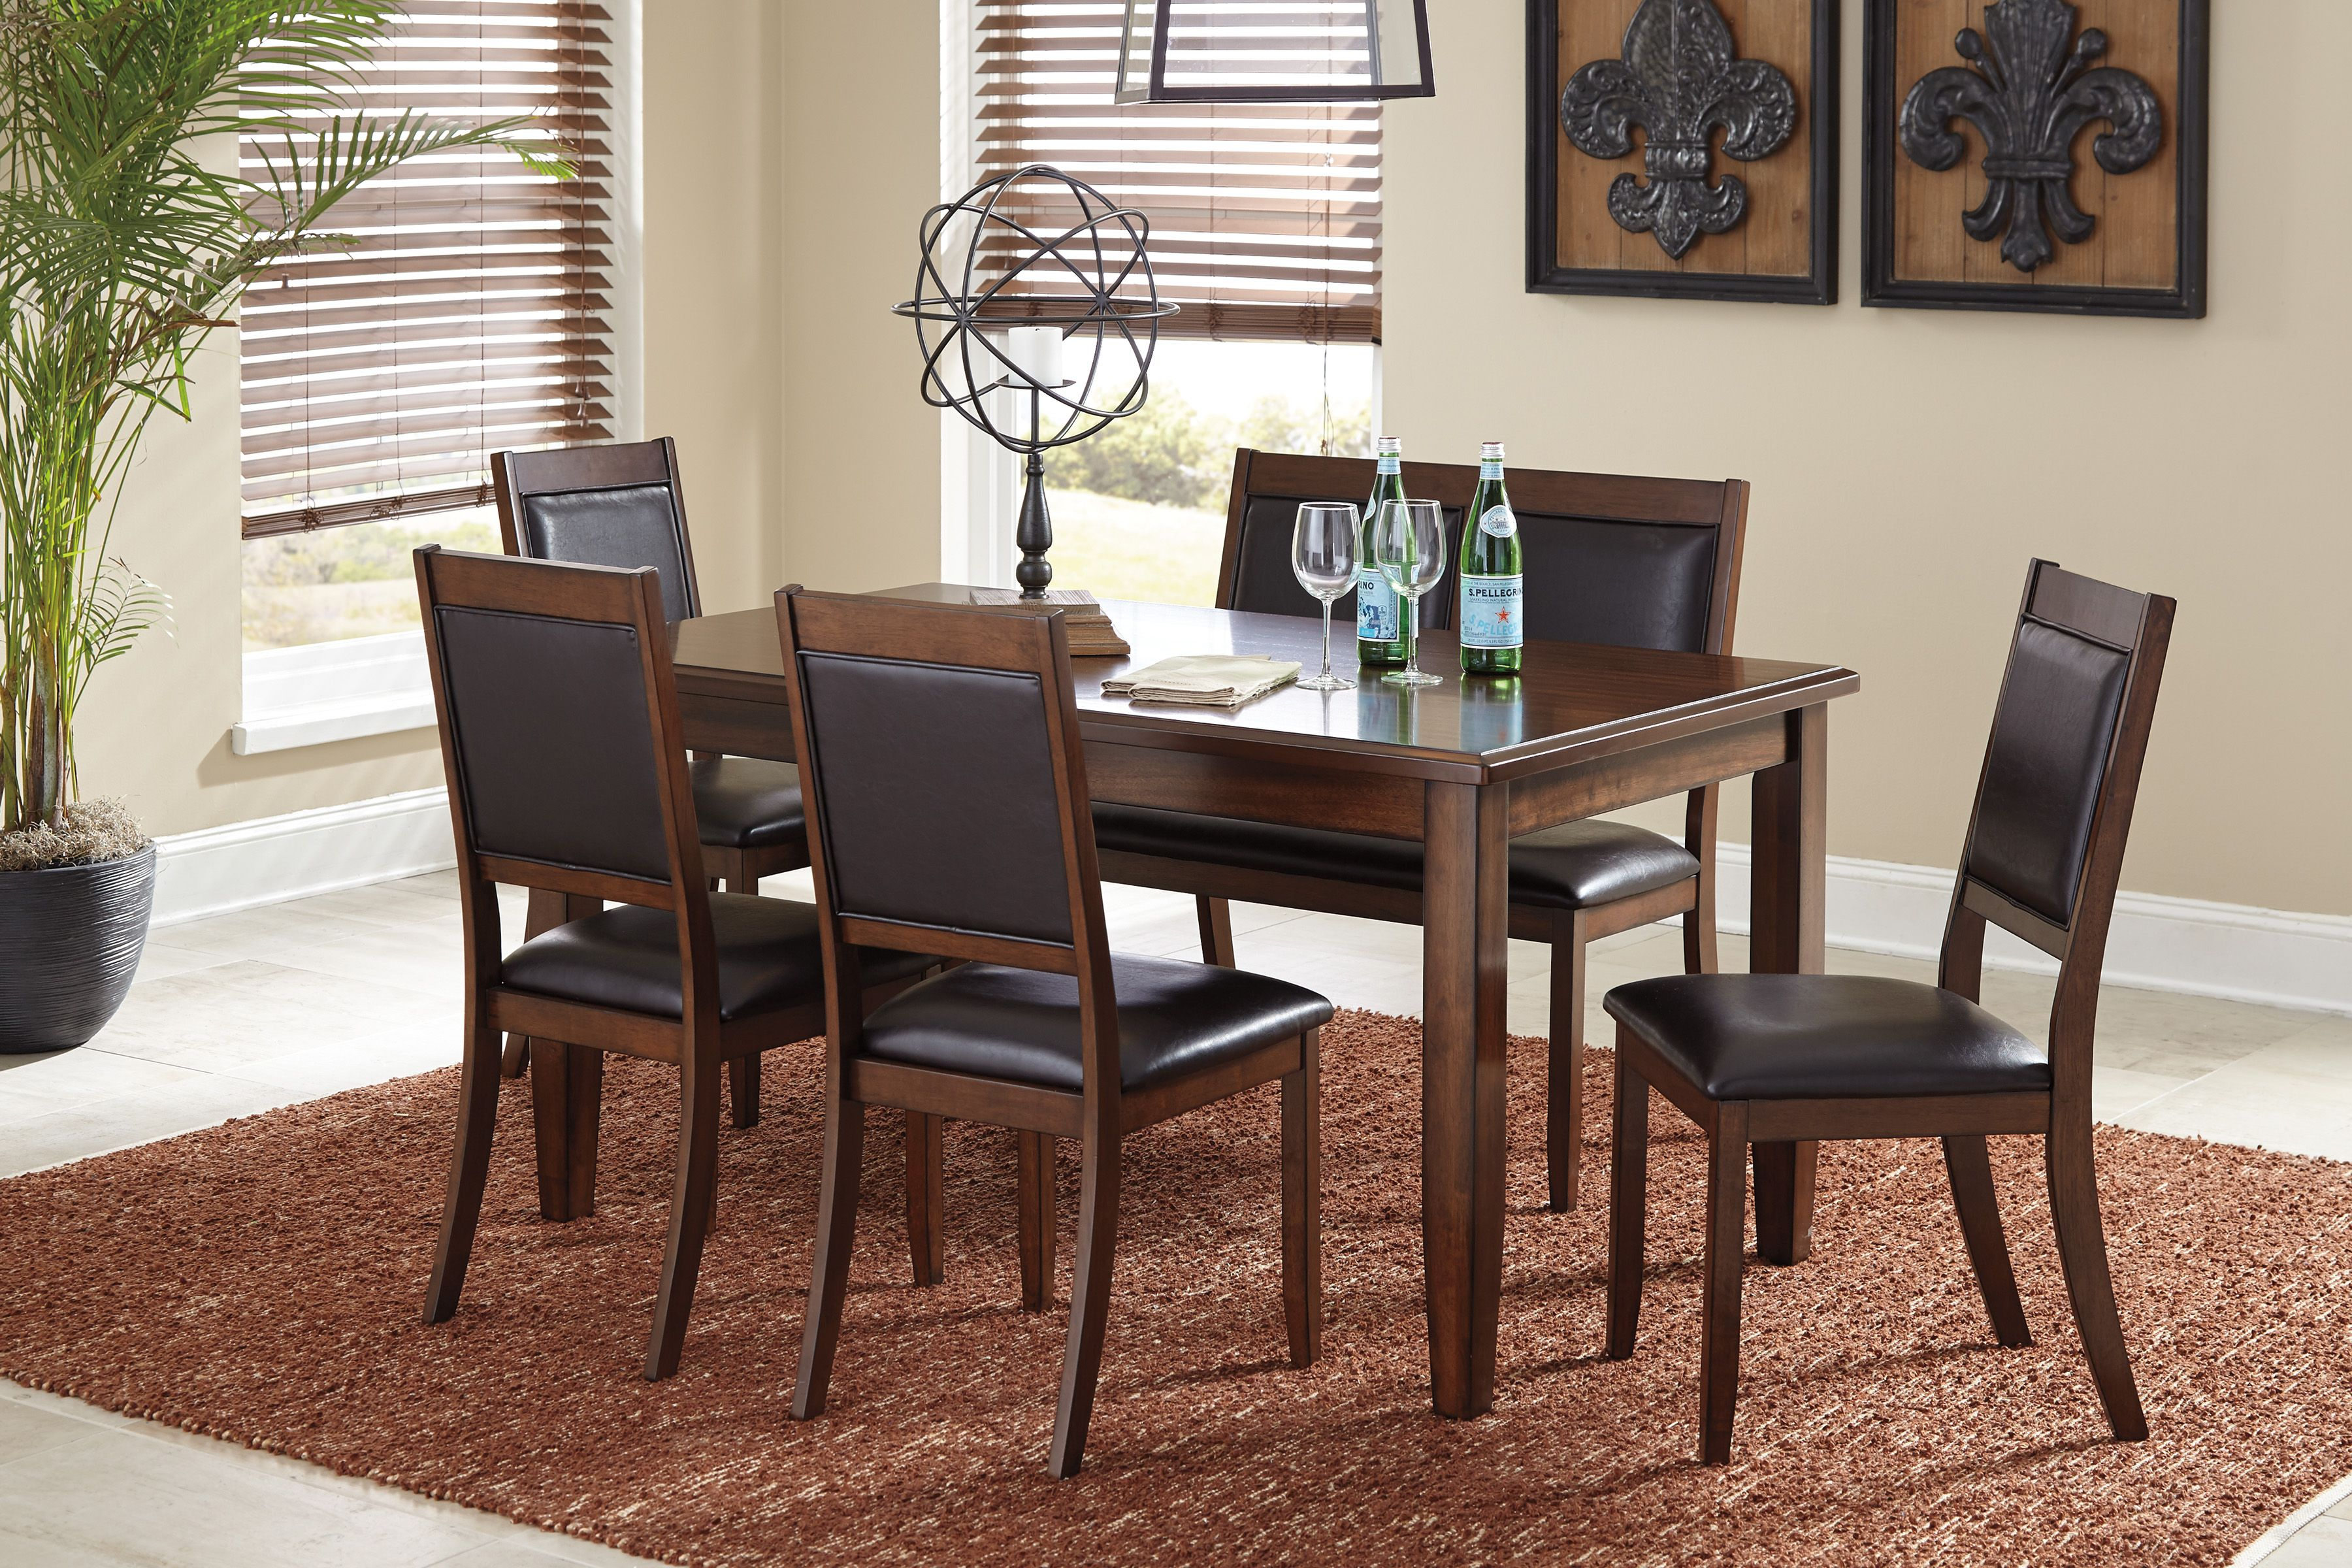 Ashley D395 325 Meredy Dining Room Table Set Dining Room Sets